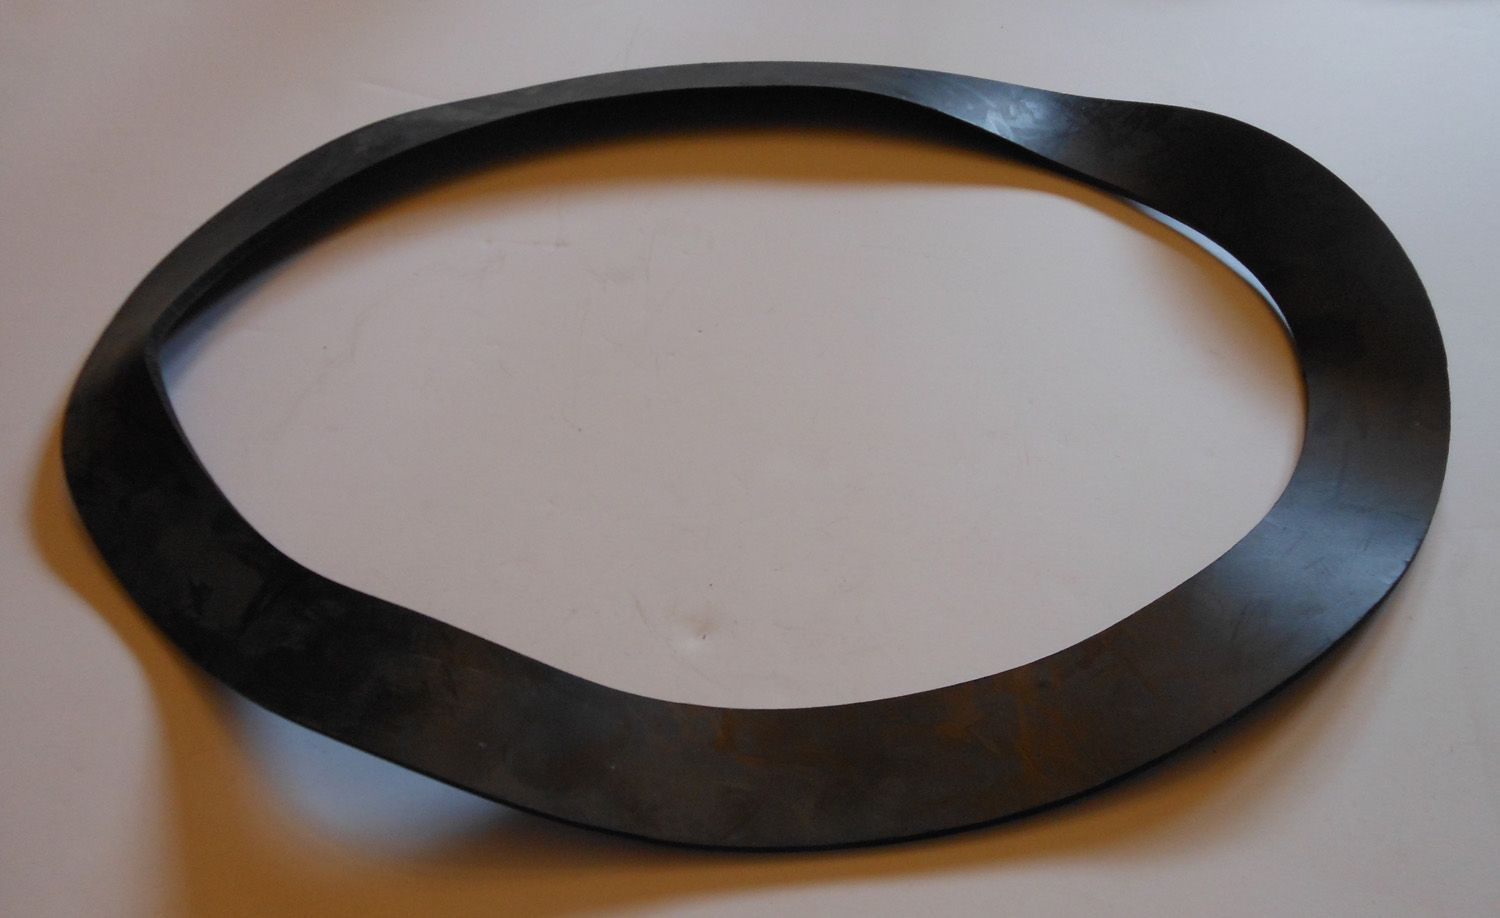 Gasket For Manhole Cover New Rubber Gasket For Manhole Cover On Hot Water Storage Tank Has 15 1 2 Outside Dia Storage Tank Water Storage Tanks Water Storage